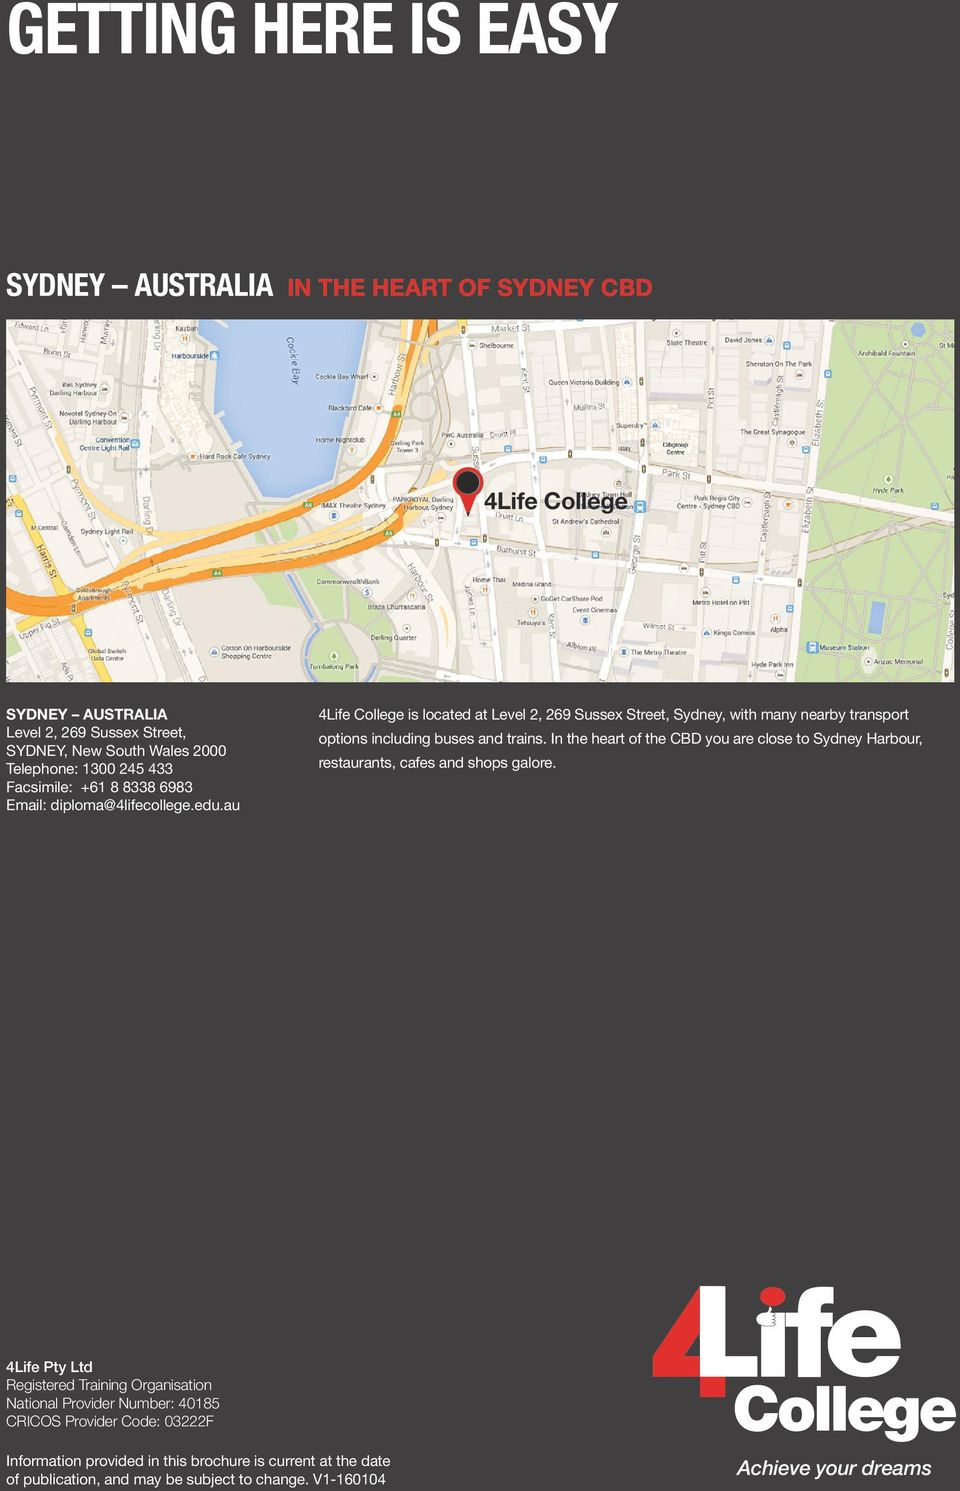 au 4Life is located at Level 2, 269 Sussex Street, Sydney, with many nearby transport options including buses and trains.